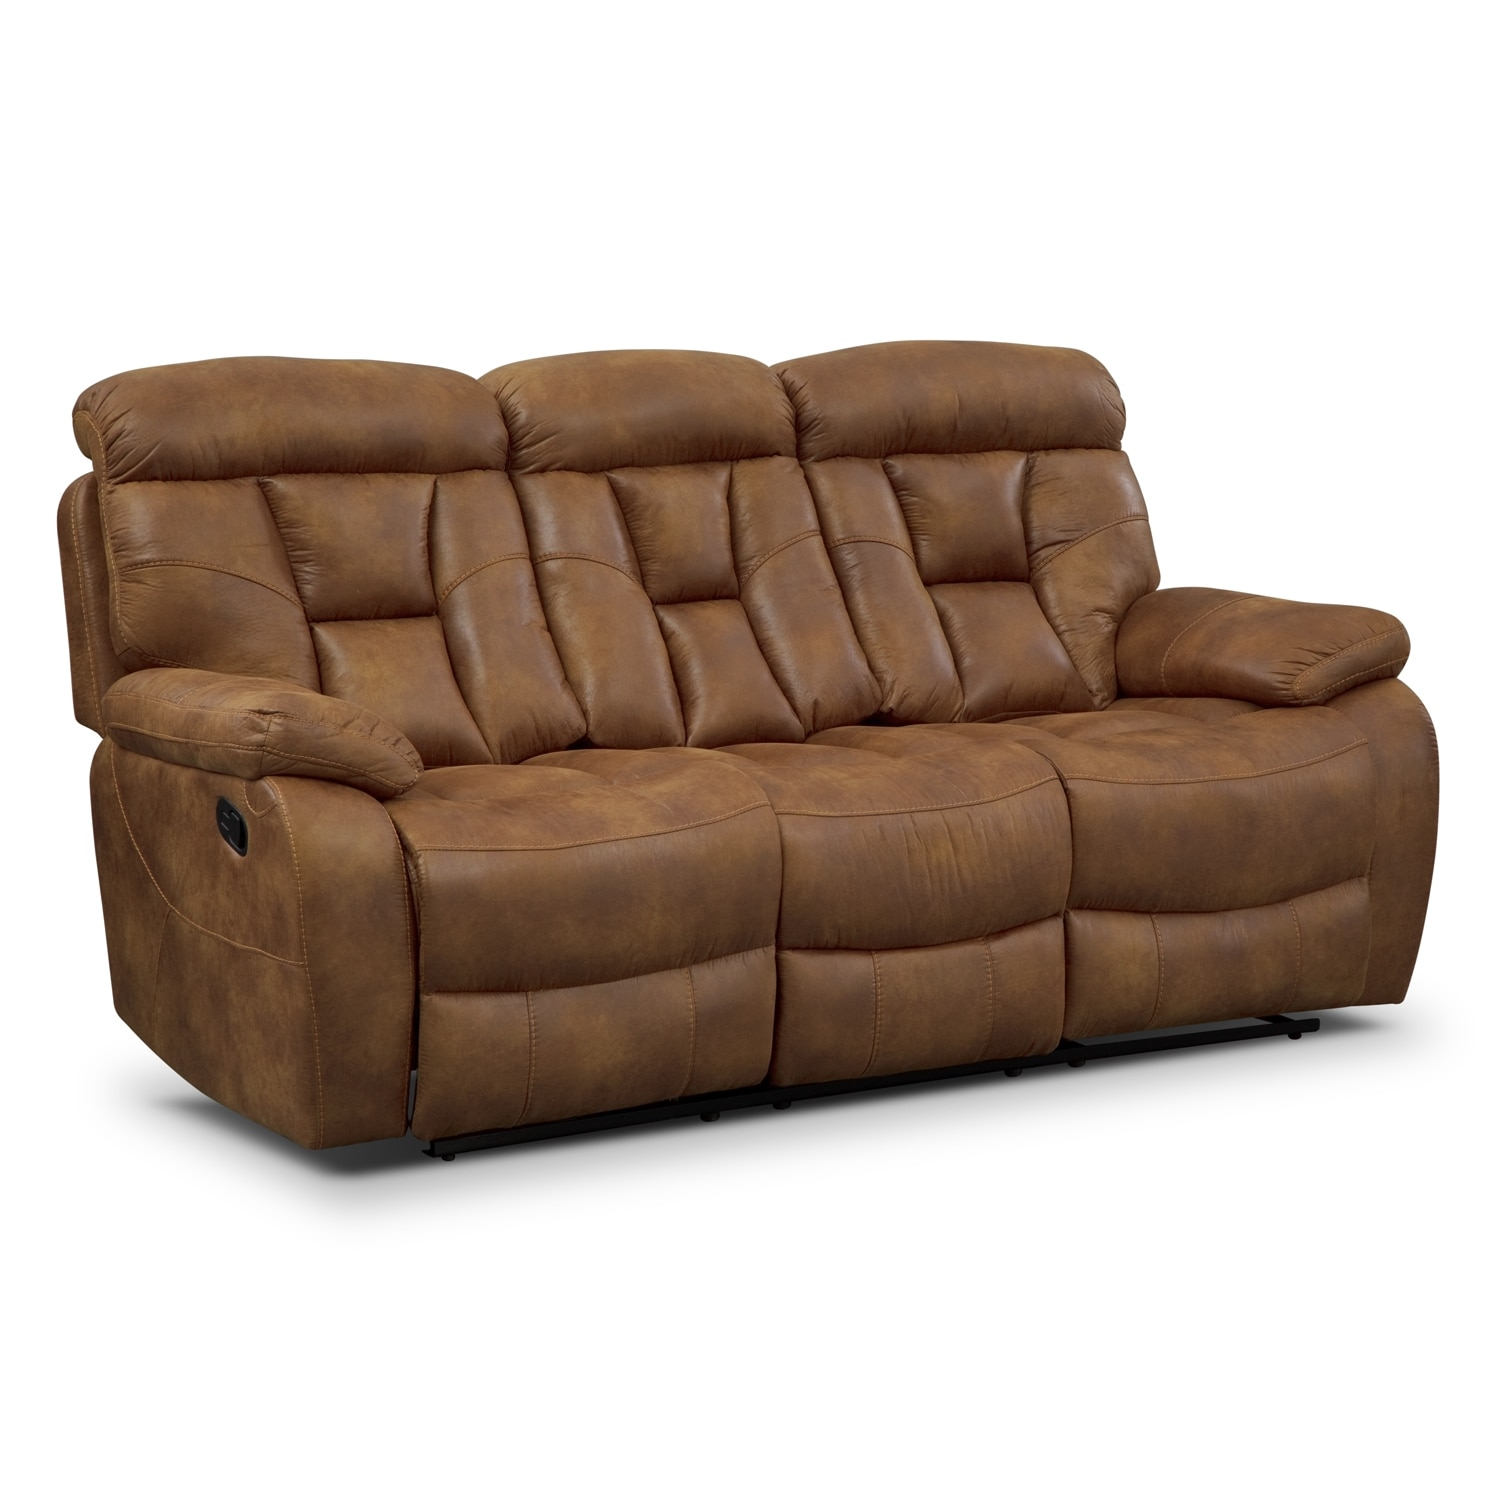 Dakota Reclining Sofa Almond Value City Furniture